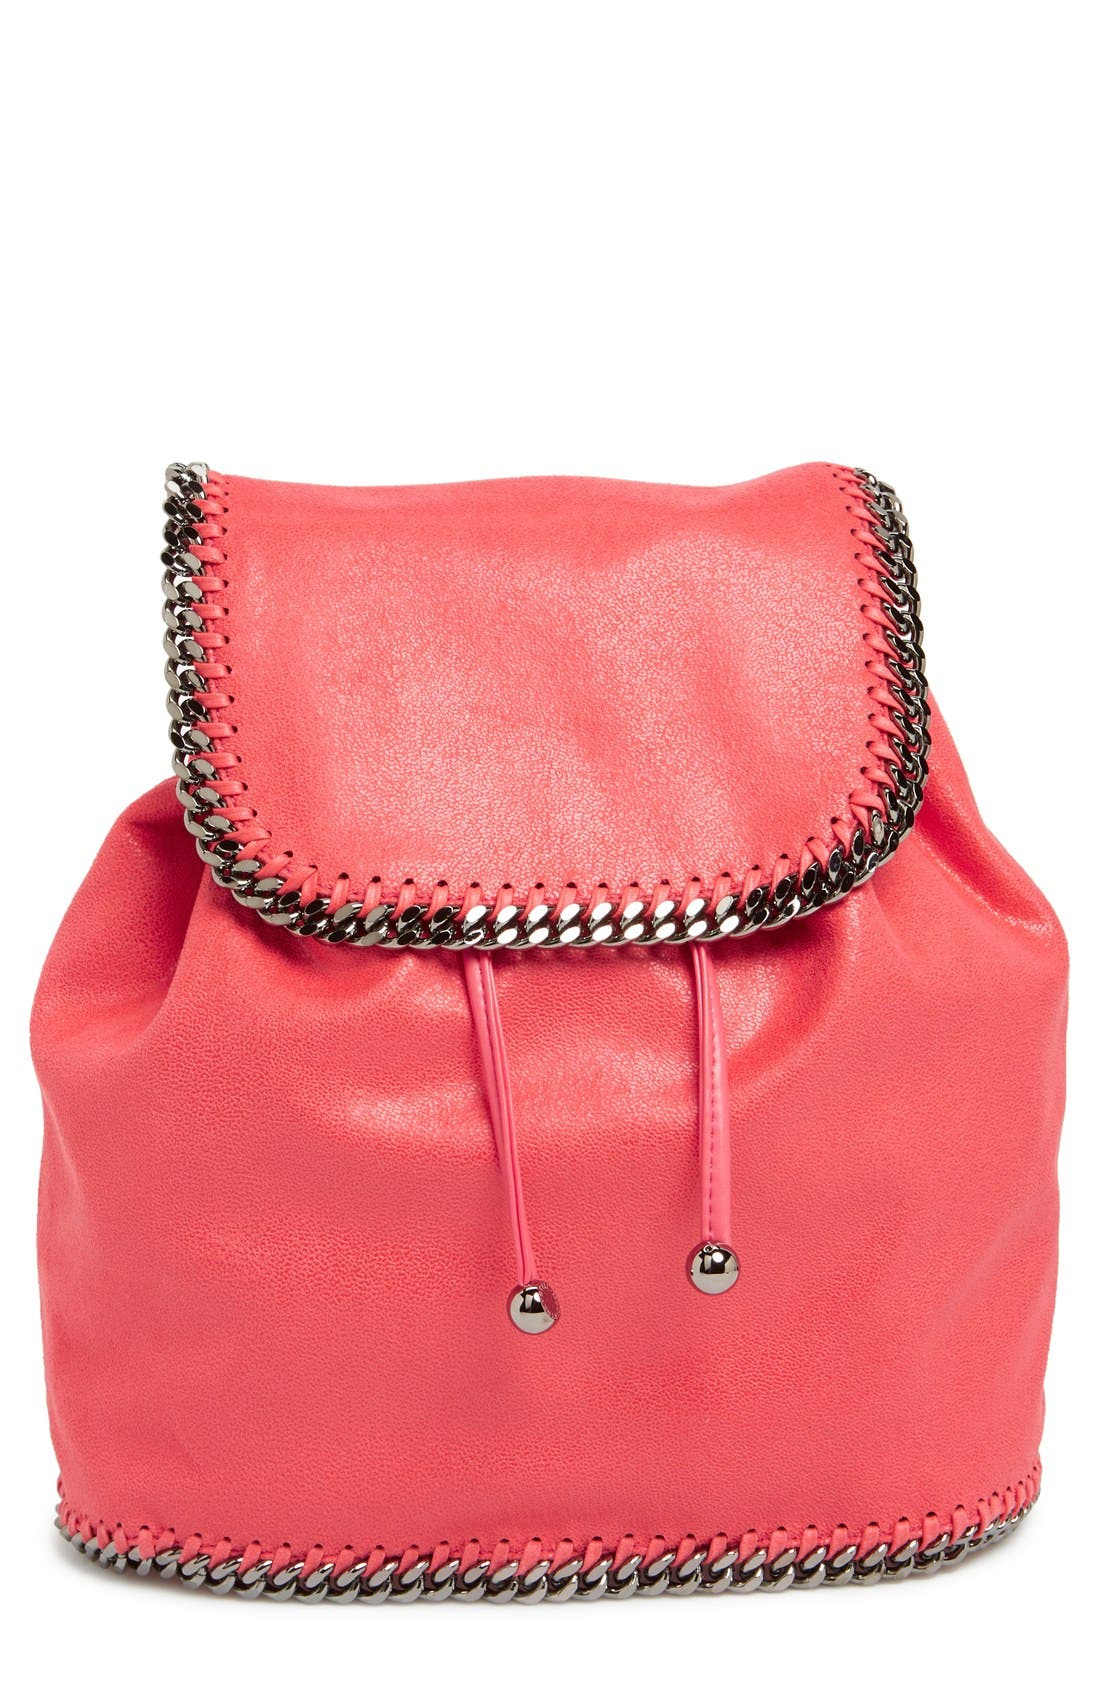 Alternate Image 1 Selected - Stella McCartney 'Falabella - Shaggy Deer' Faux Leather Backpack